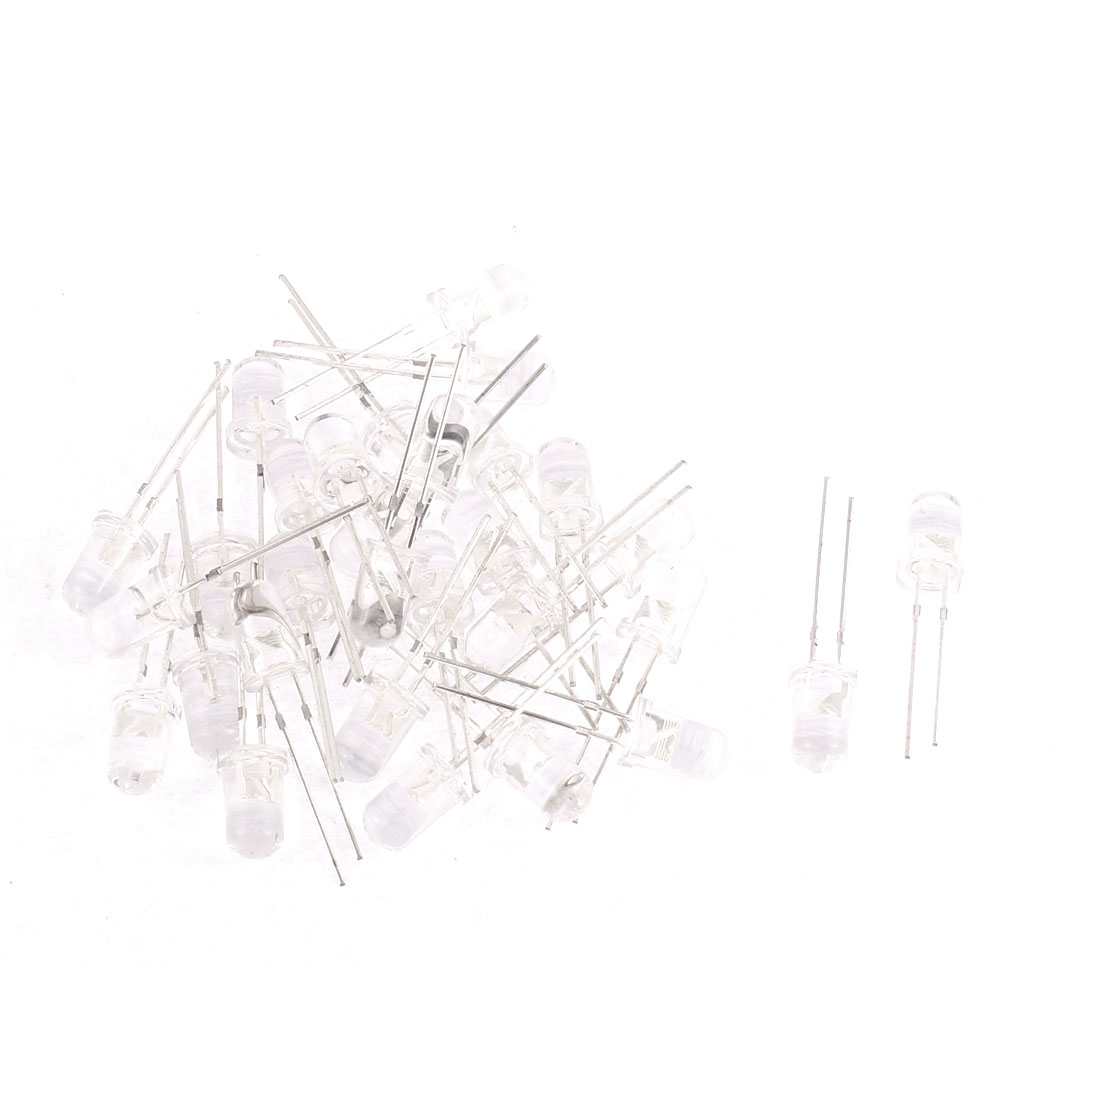 30pcs 5mm Round Head 2 Terminals Led Light Emitting Diode Buld Lamp